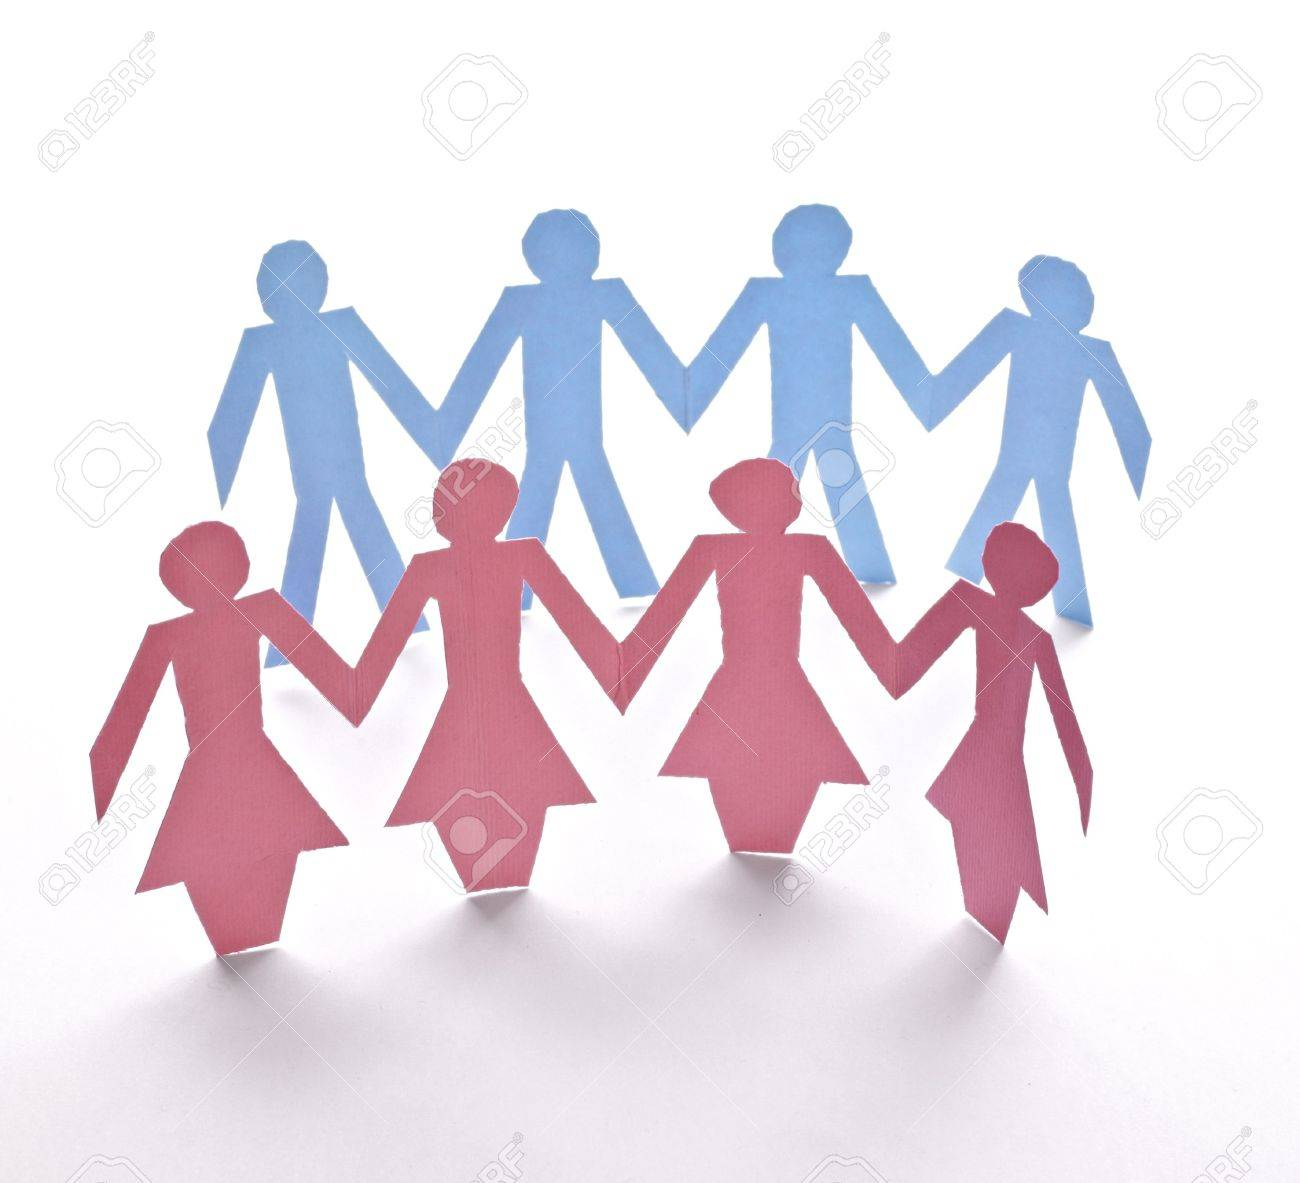 close up of people cut out of paper on white background Stock Photo - 6903006